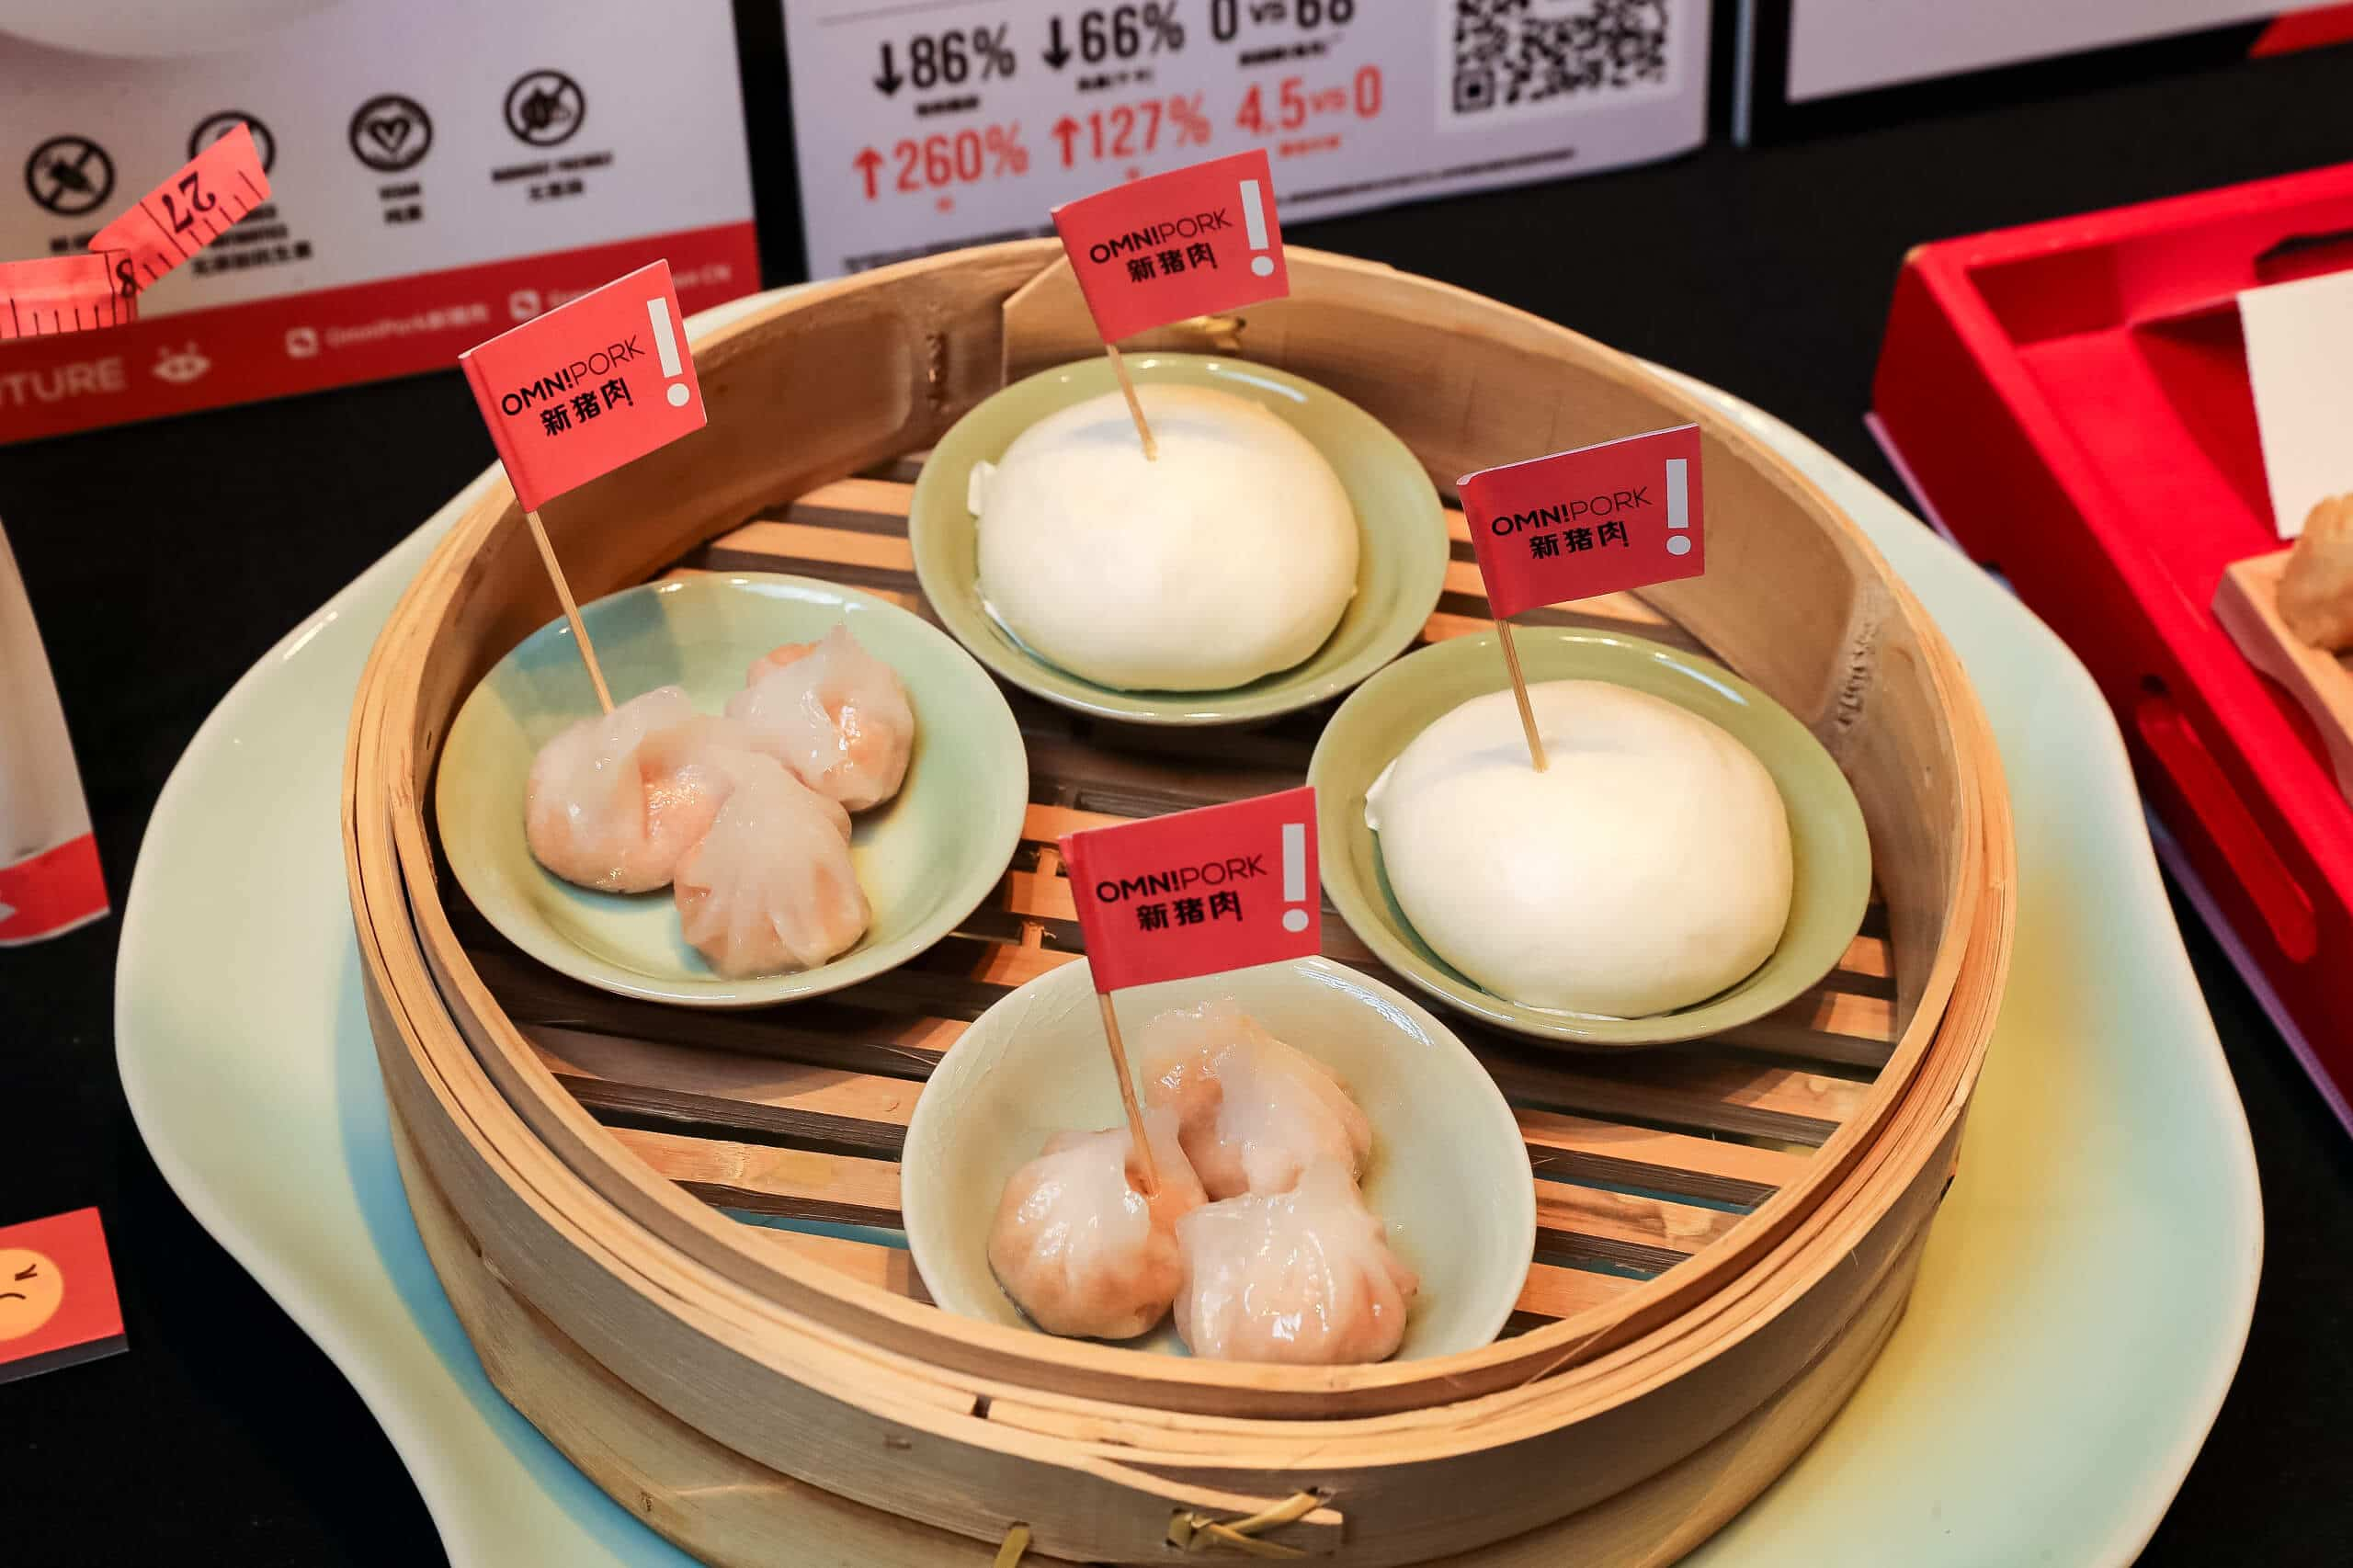 Plant-based firm green monday - food tech news in asia